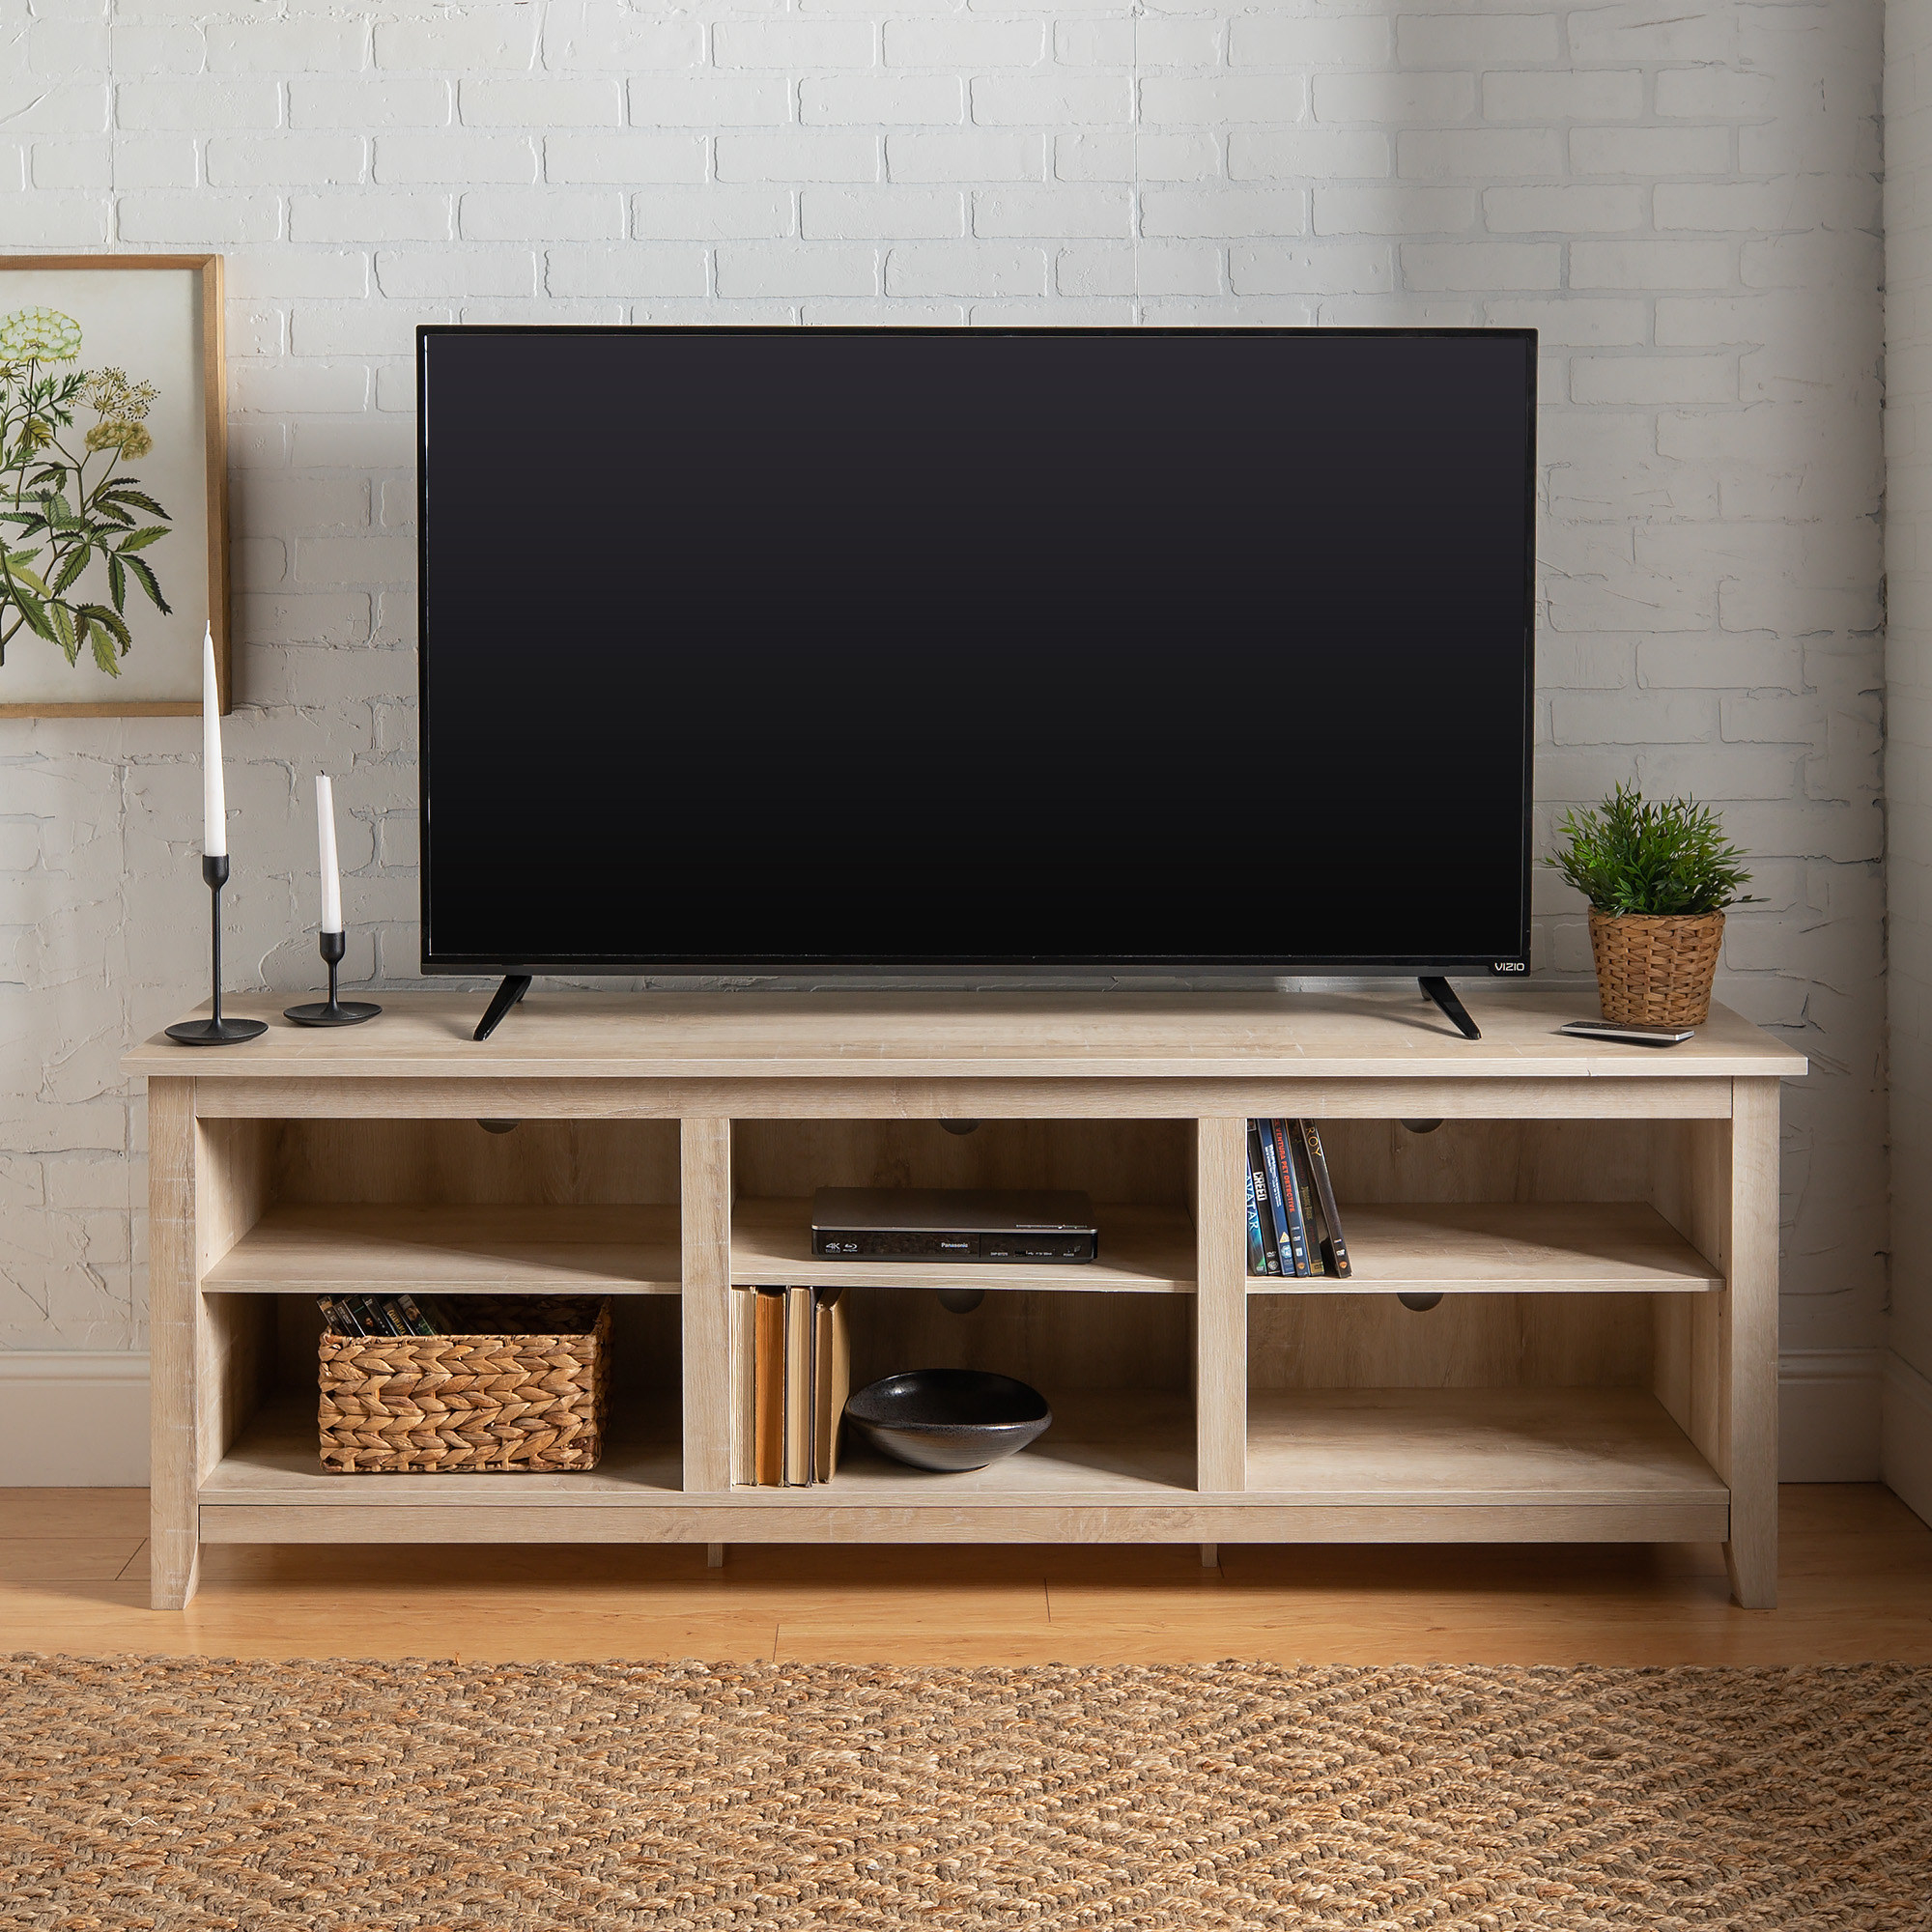 The tan TV stand with storage shelves and a TV on top